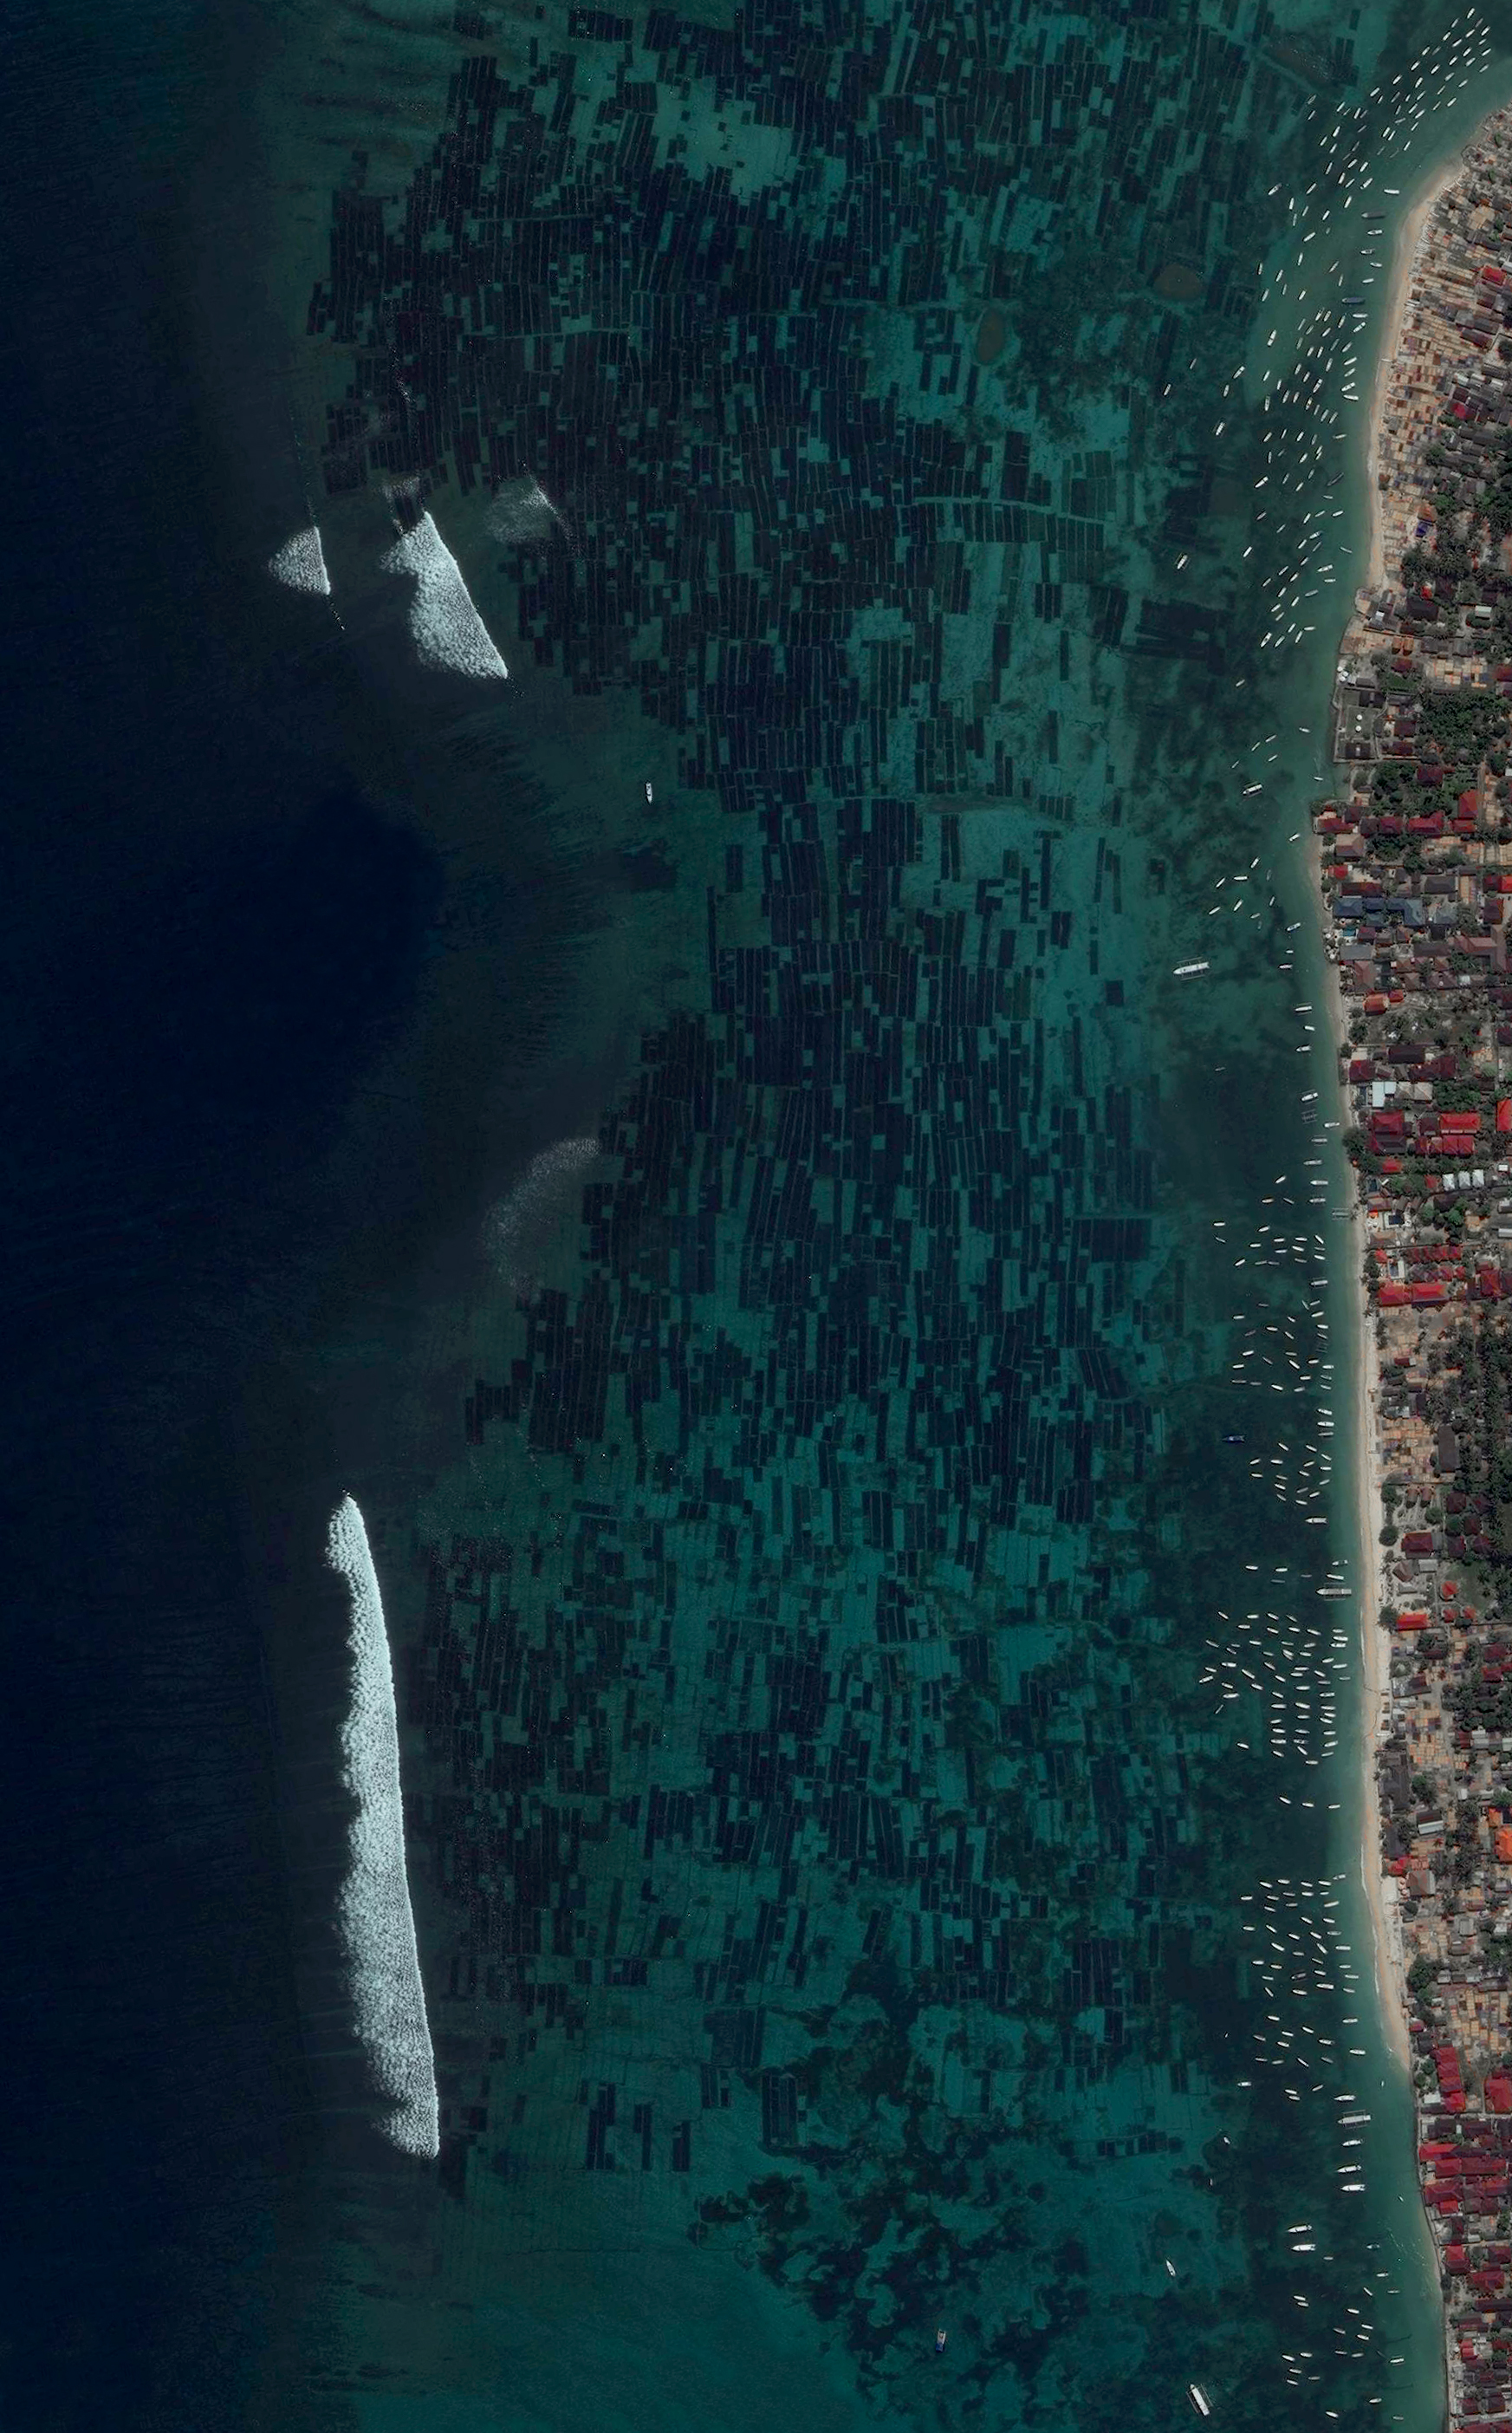 2/21/2016   Seaweed Farms   Nusa Lembongan, Indonesia  8°40.906′S 115°27.067′E    Seaweed farms on Nusa Lembongan – a small island located southeast of Bali, Indonesia – have an average harvest of 50,000 pounds per month. Once the seaweed is extracted from the water, it is dried by the sun for 3-7 days, depending on the season.